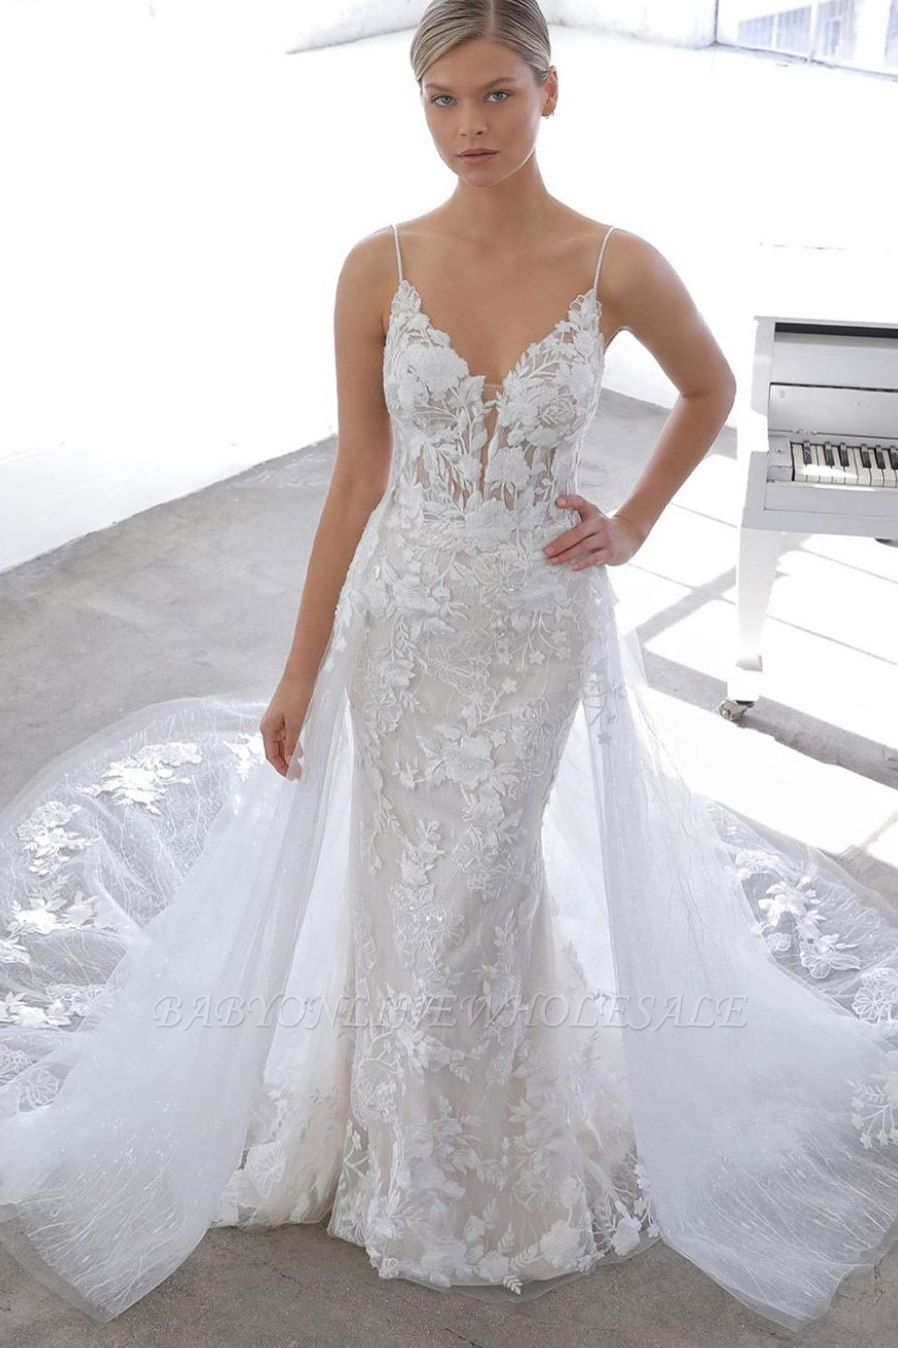 Spaghetti Strap See-through Lace Column Long Wedding dress with Tulle Overskirt